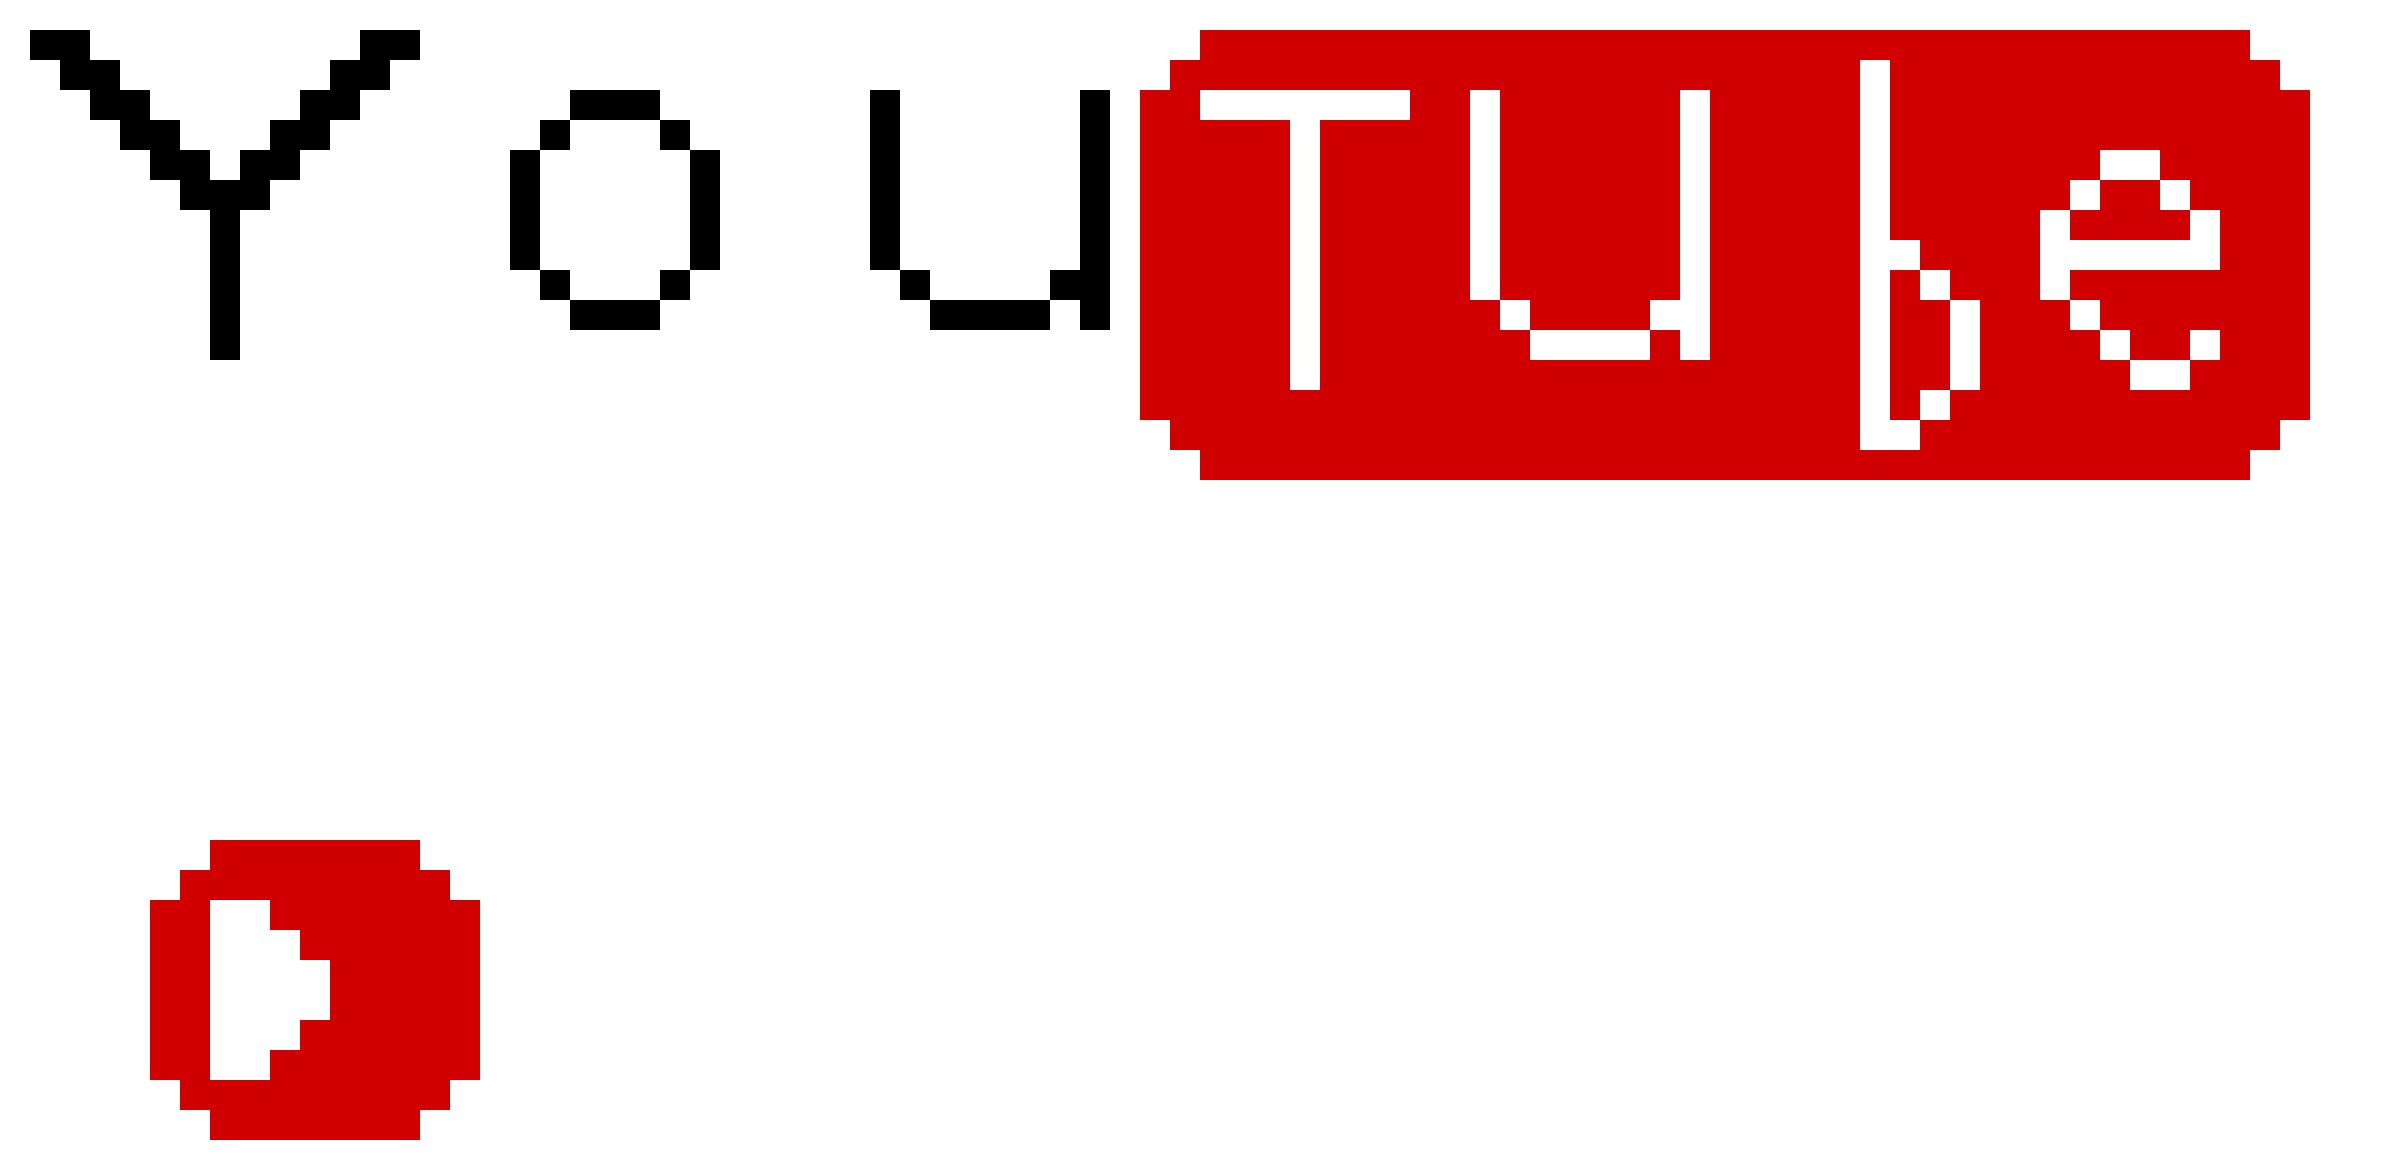 Youtube Logo And Play Button Pixel Art Maker